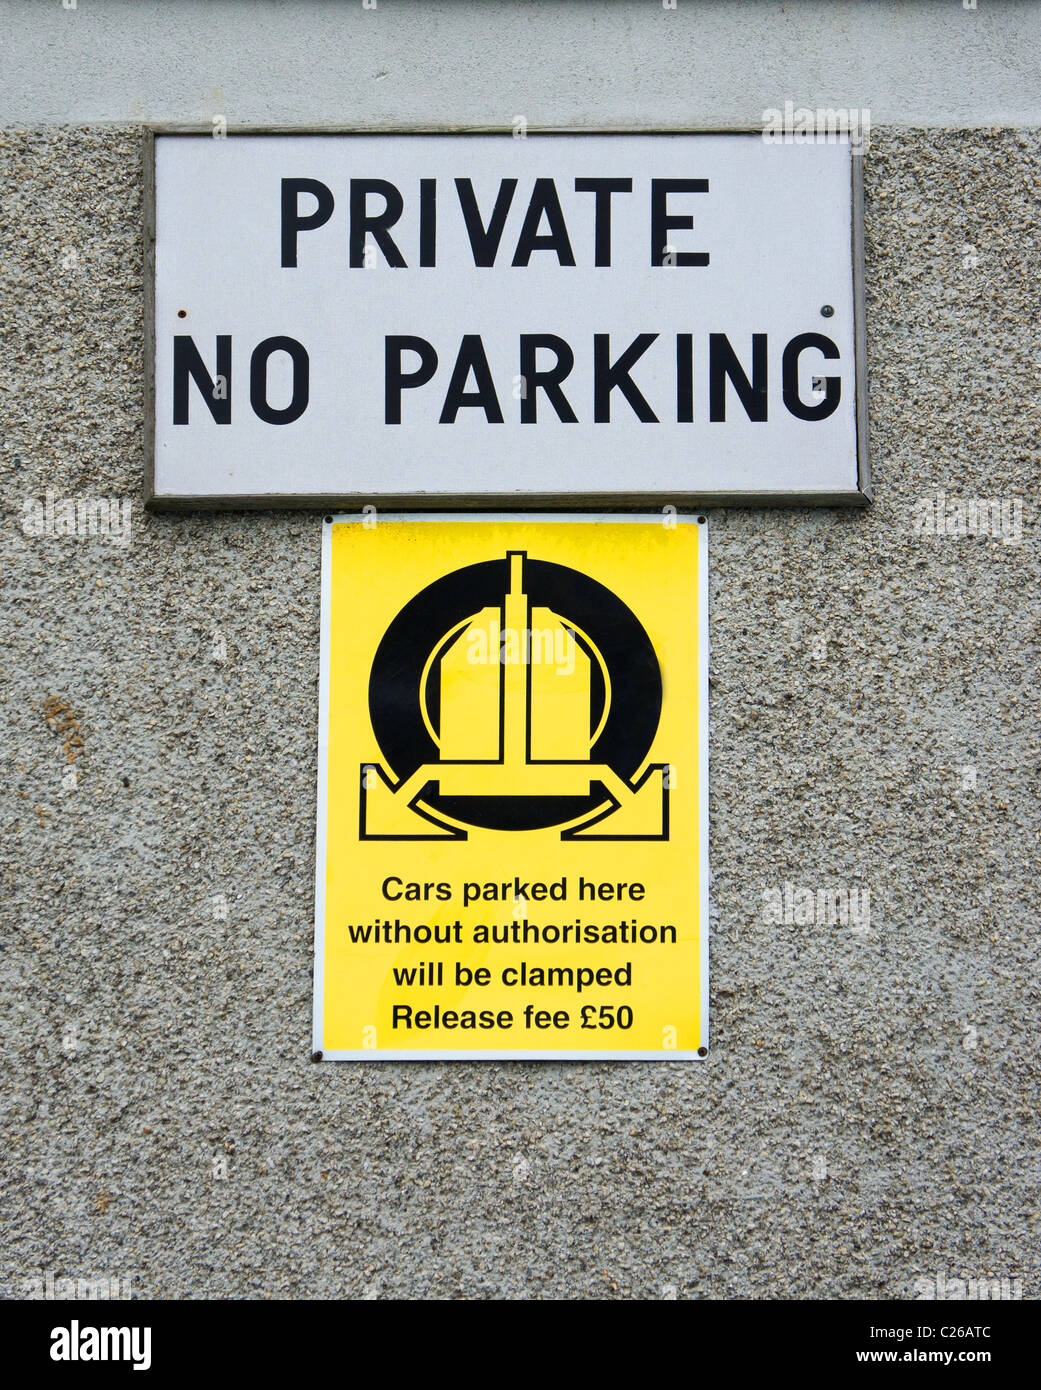 A private no parking sign, UK - Stock Image